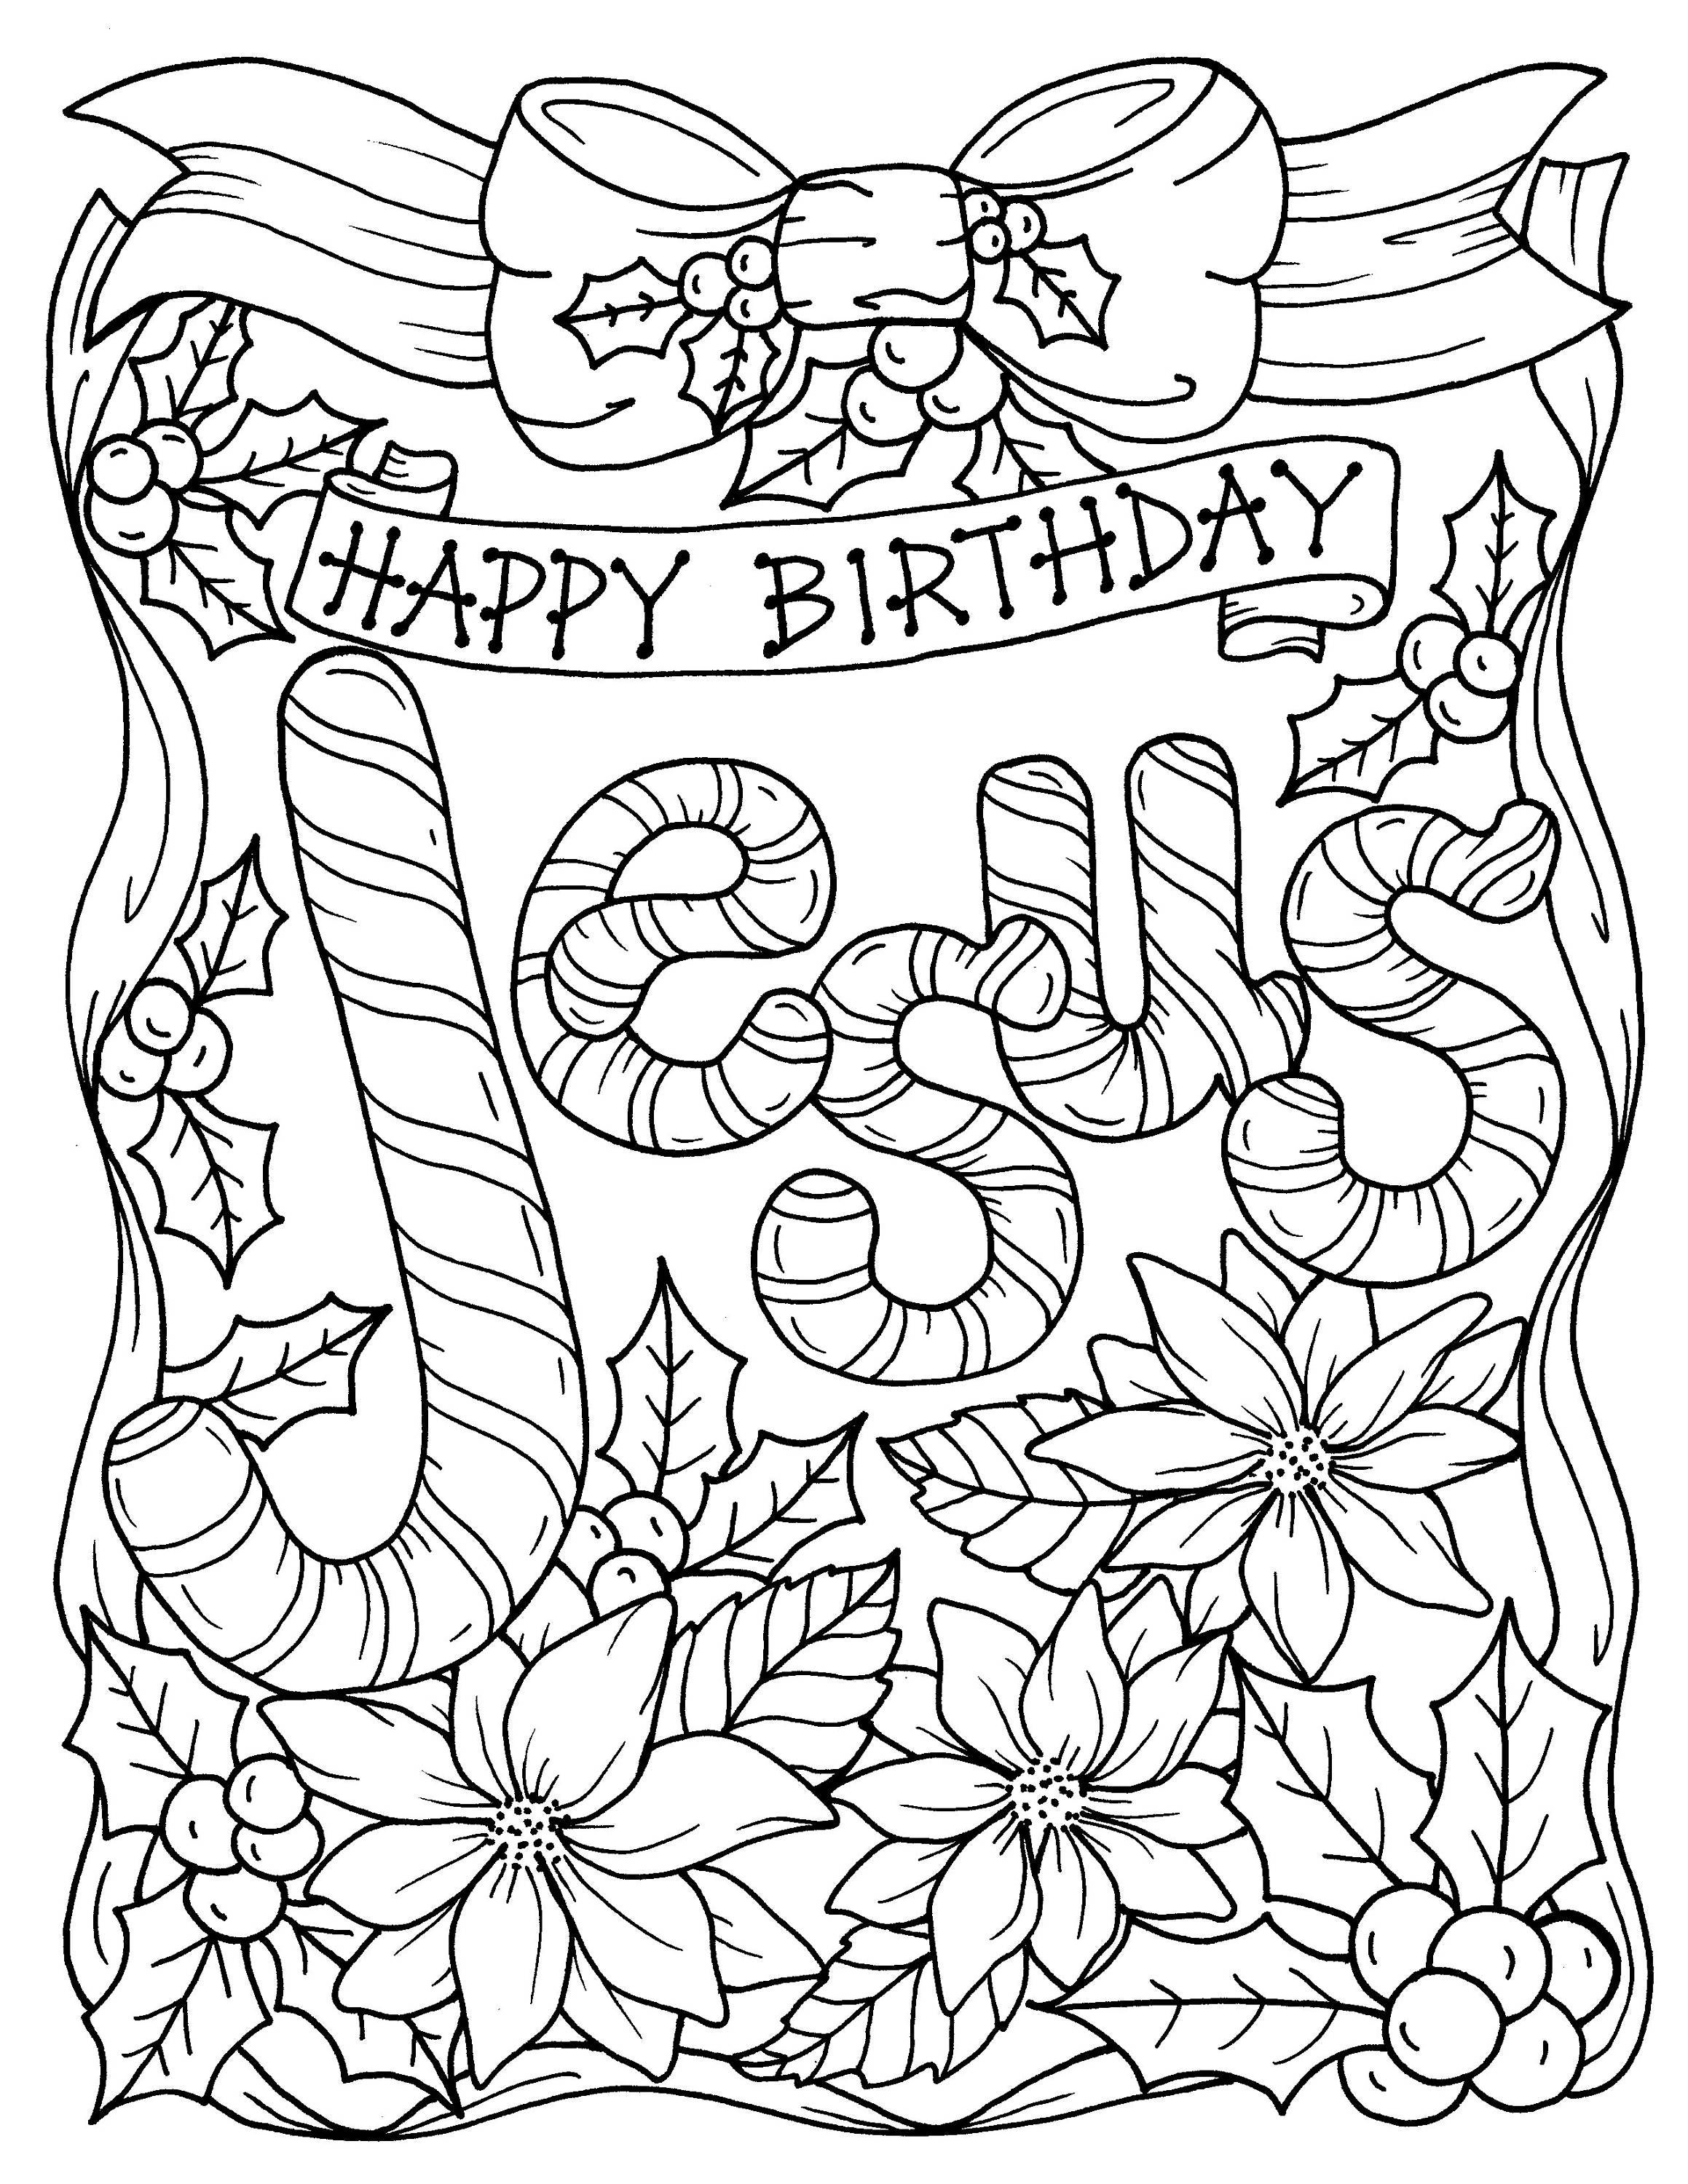 colouring pages bible adult colouring page bible verse philippians 4 instant colouring pages bible